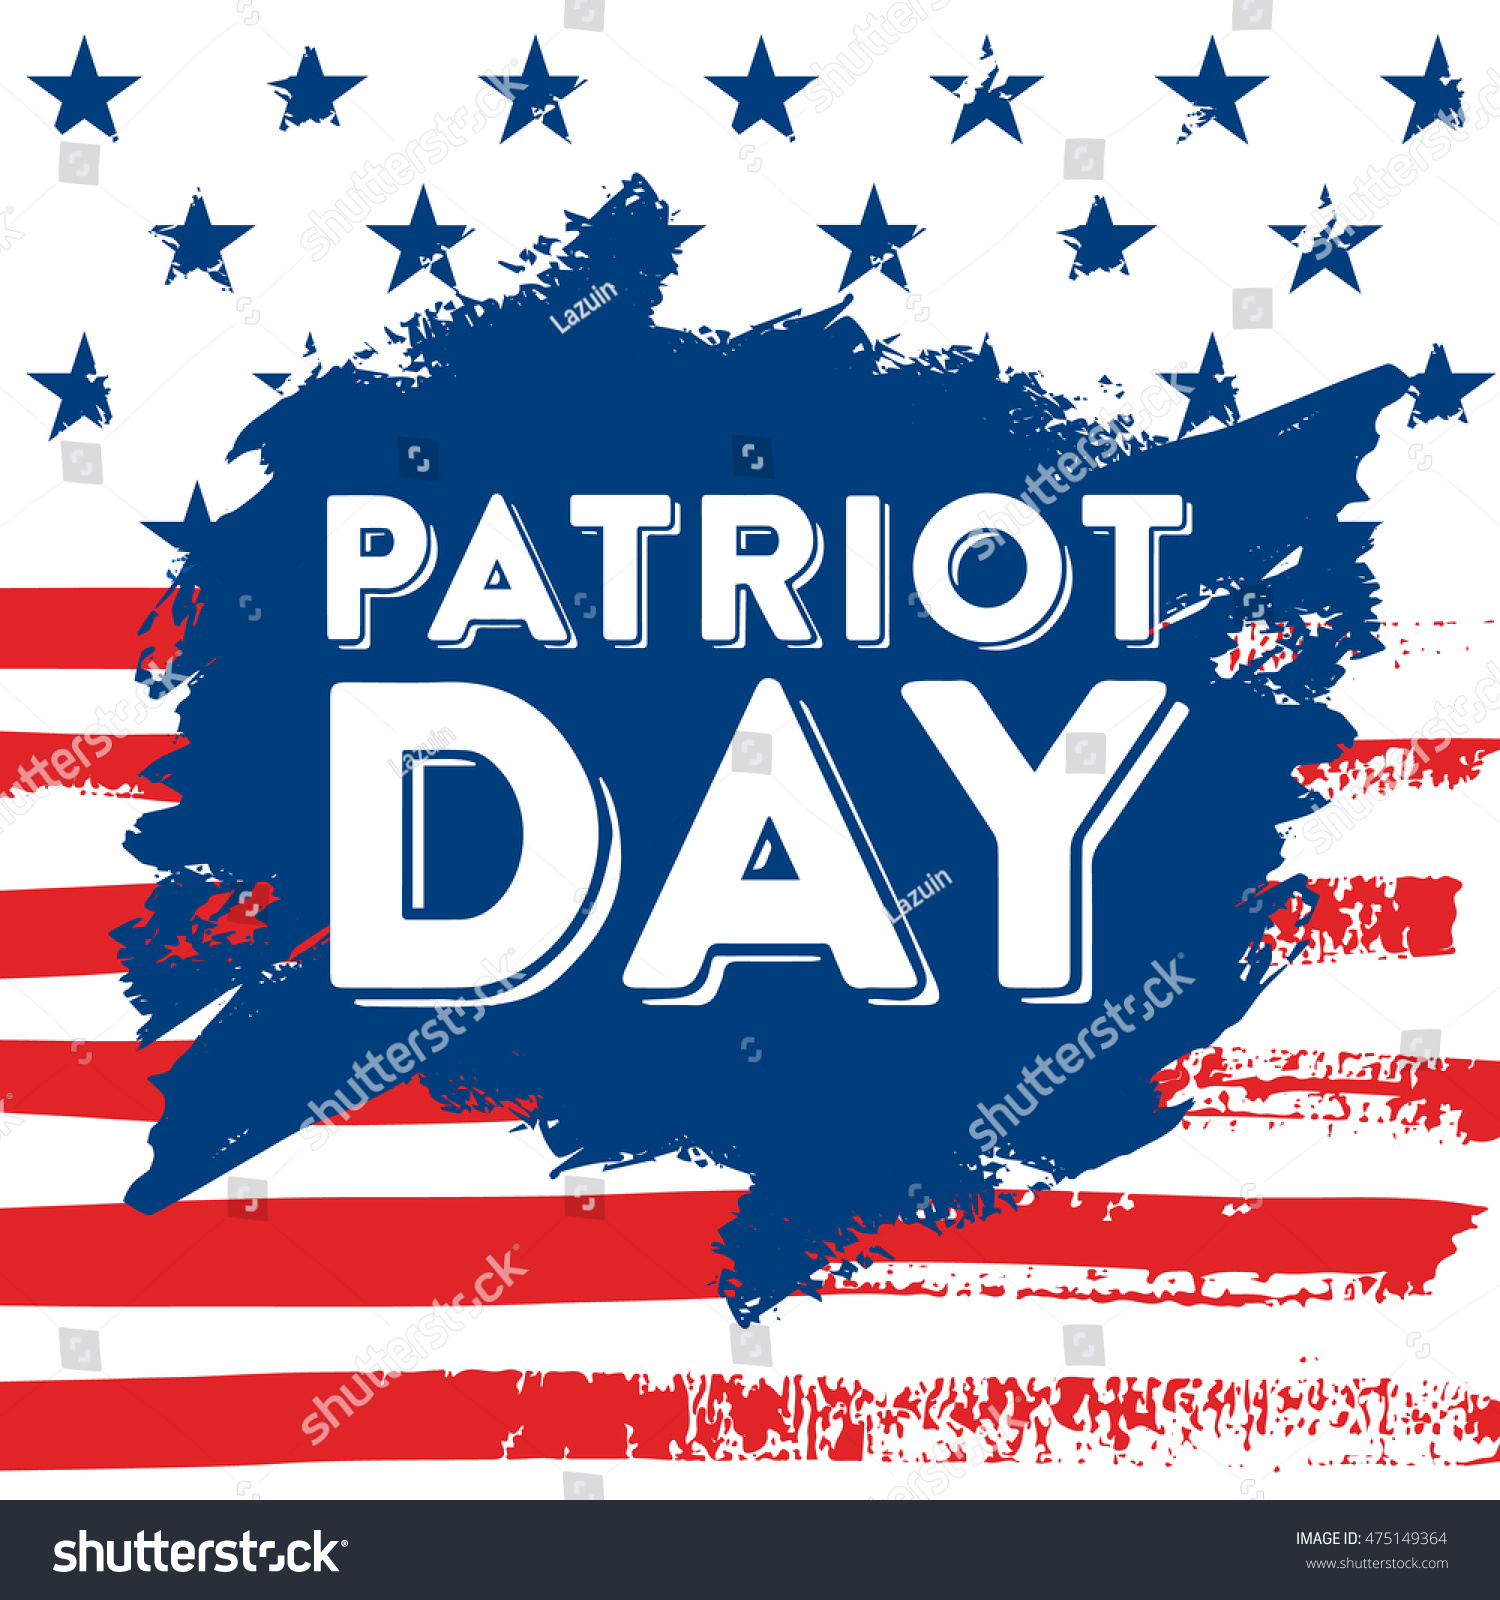 911 Patriot Day Background Patriot Day Stock Vector